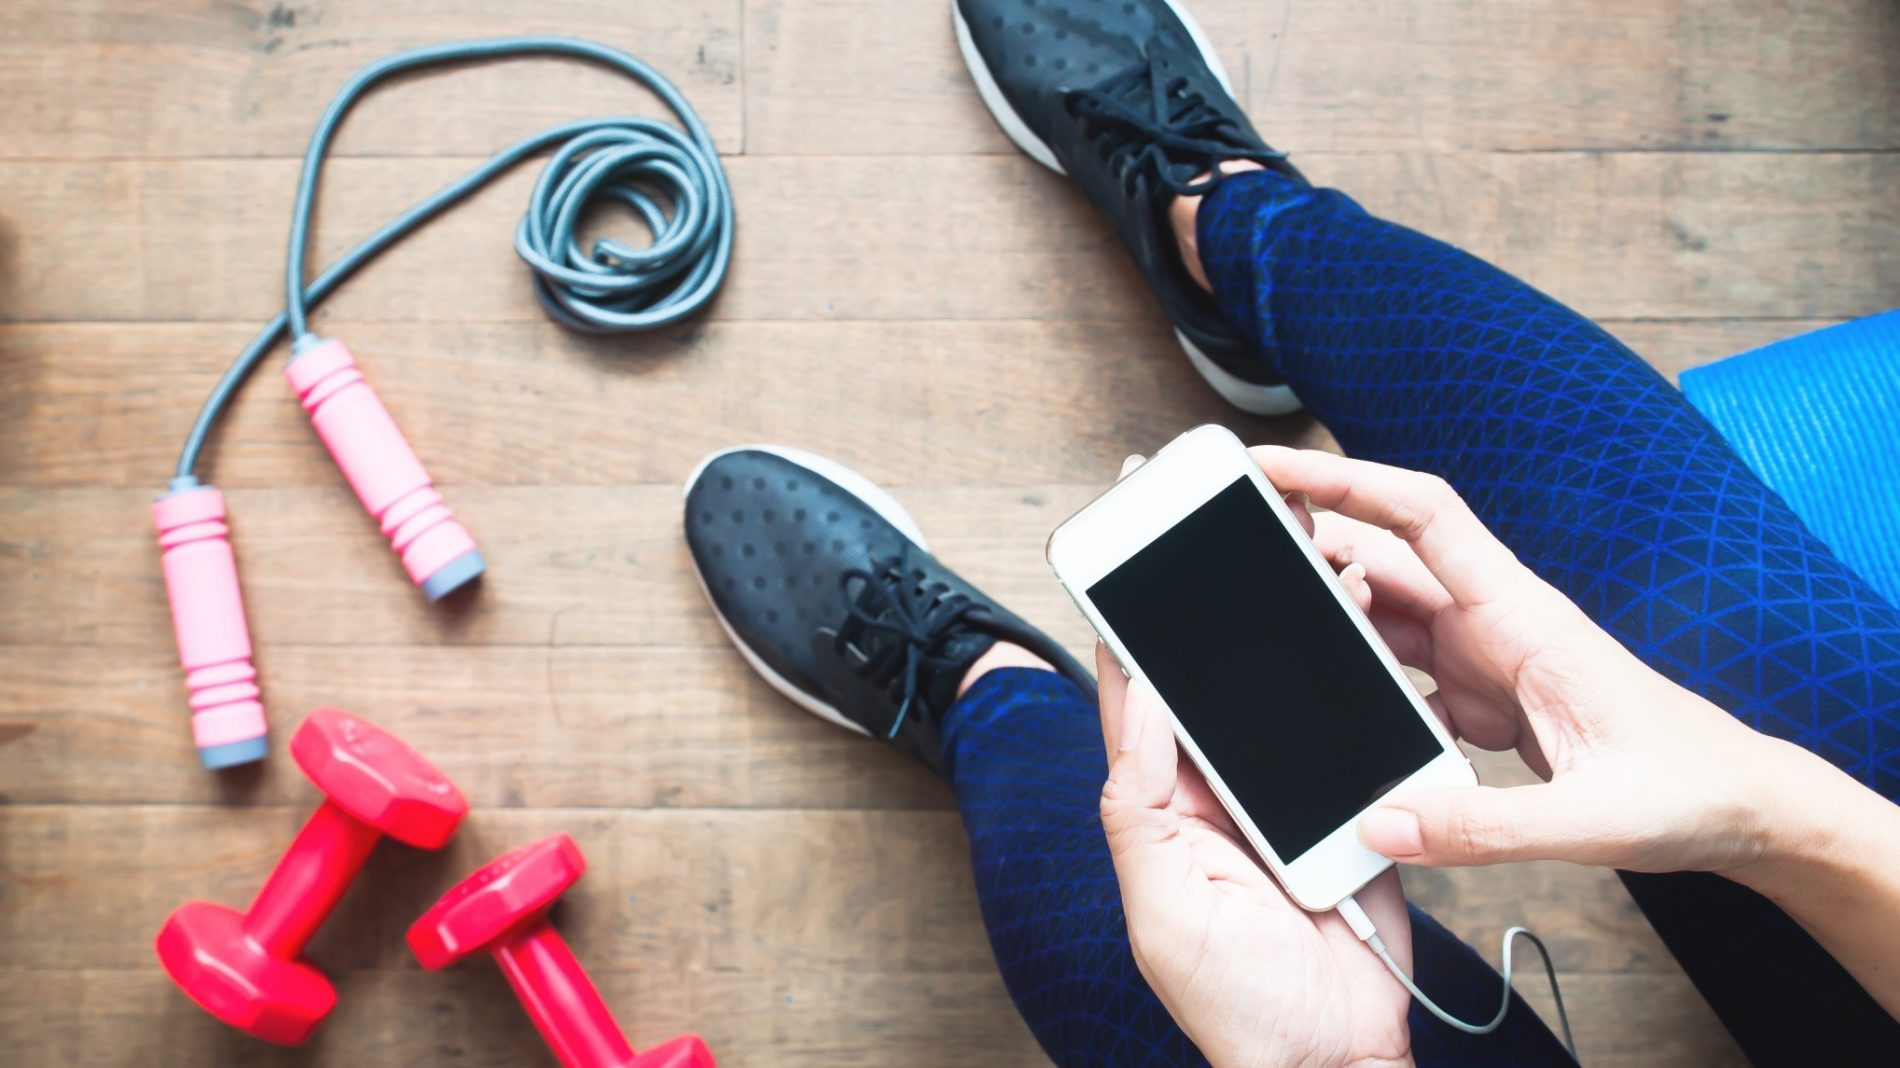 woman-in-fitness-clothing-using-smartphone-fitness-and-diet-healthy-lifestyle-concept_t20_6wL3oL